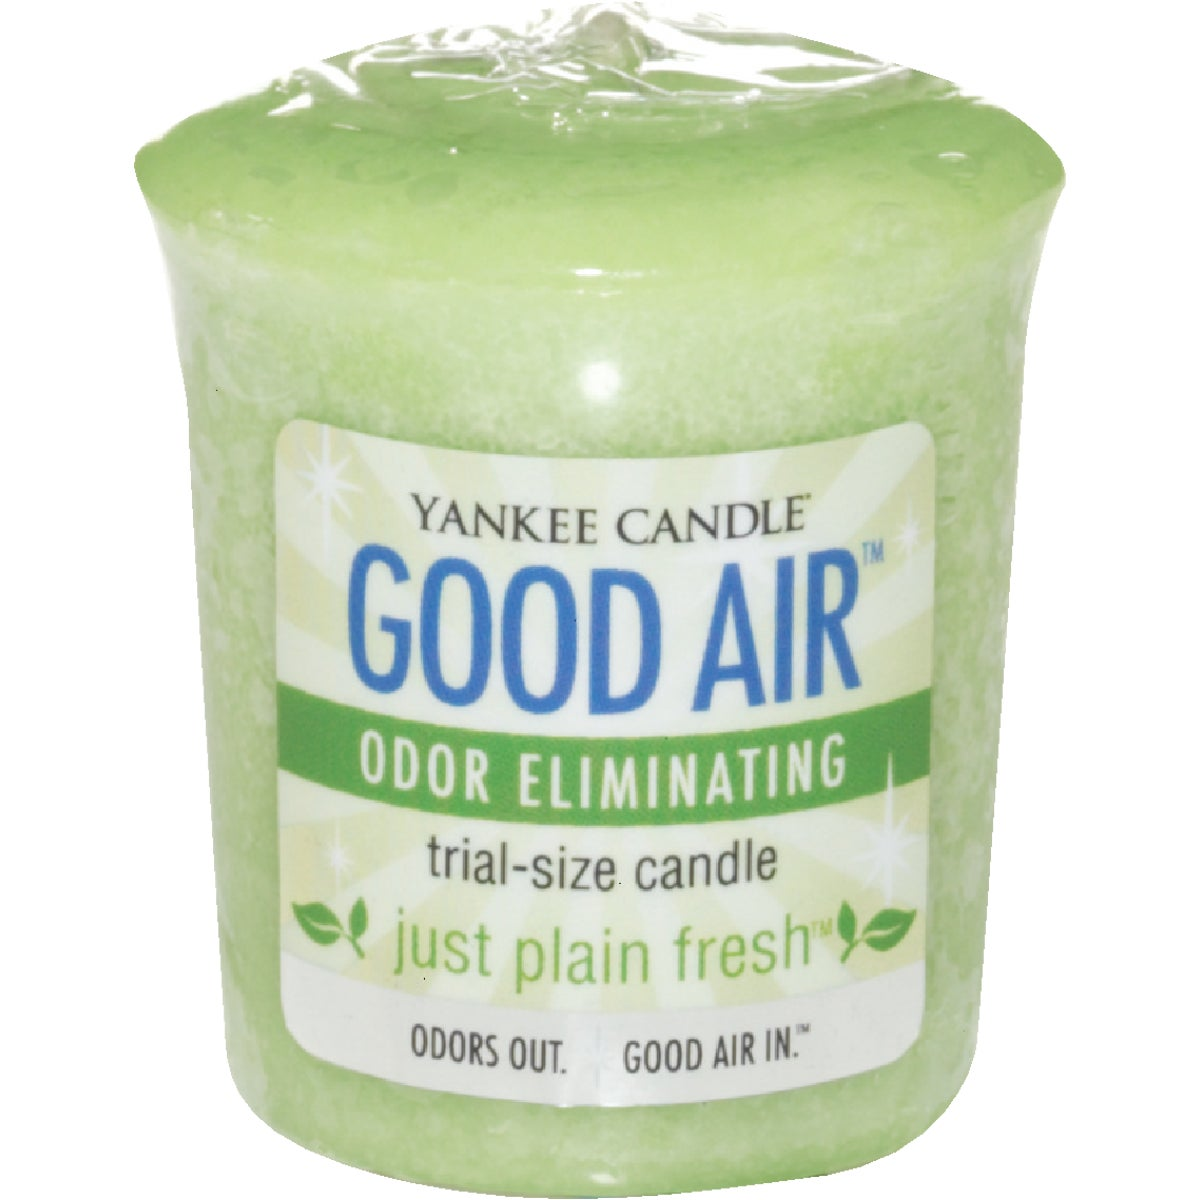 GOOD AIR VOTIVE CANDLE